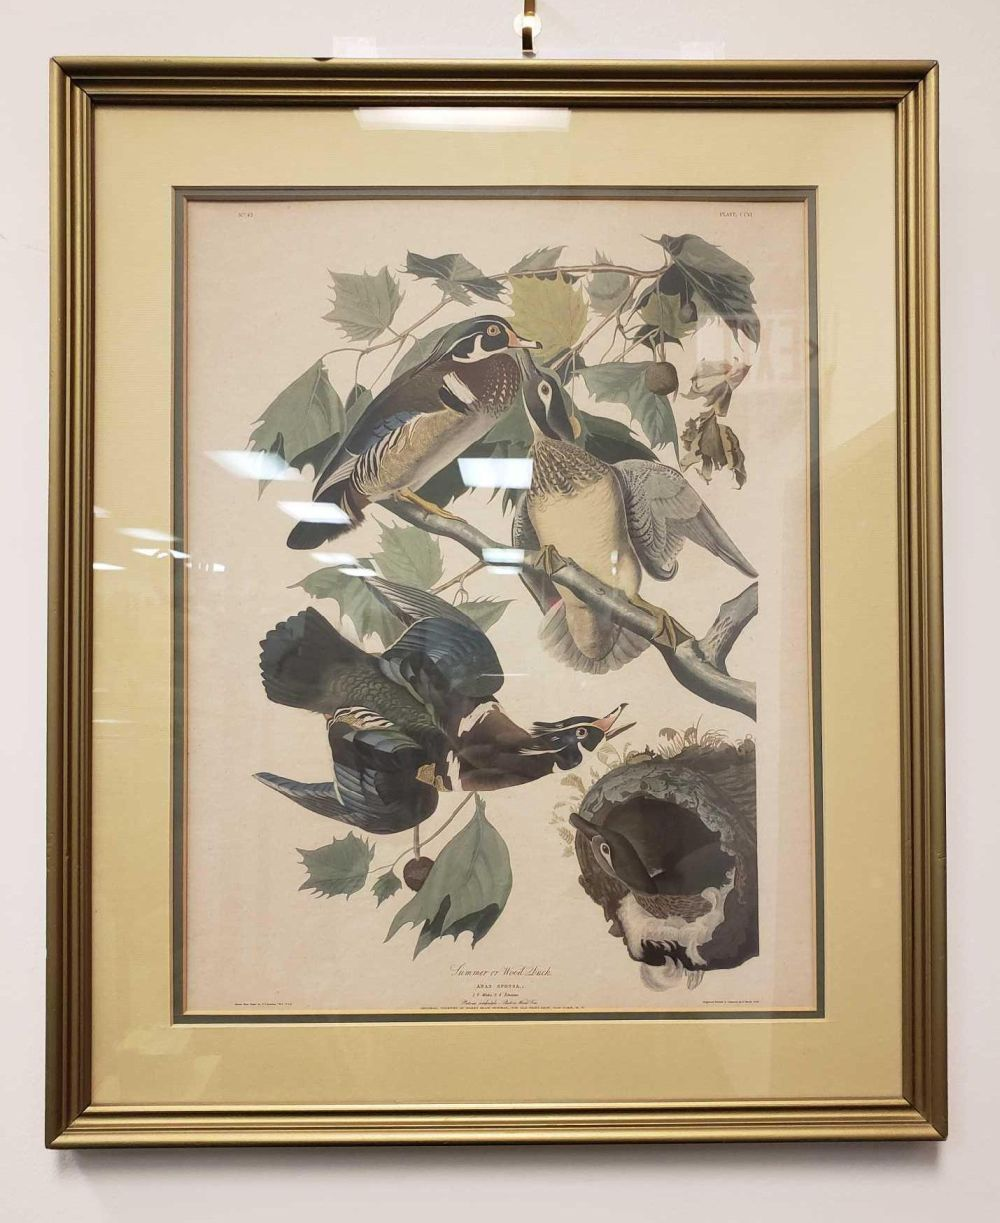 Lot 1091: Summer or Wood Duck Illustration Print